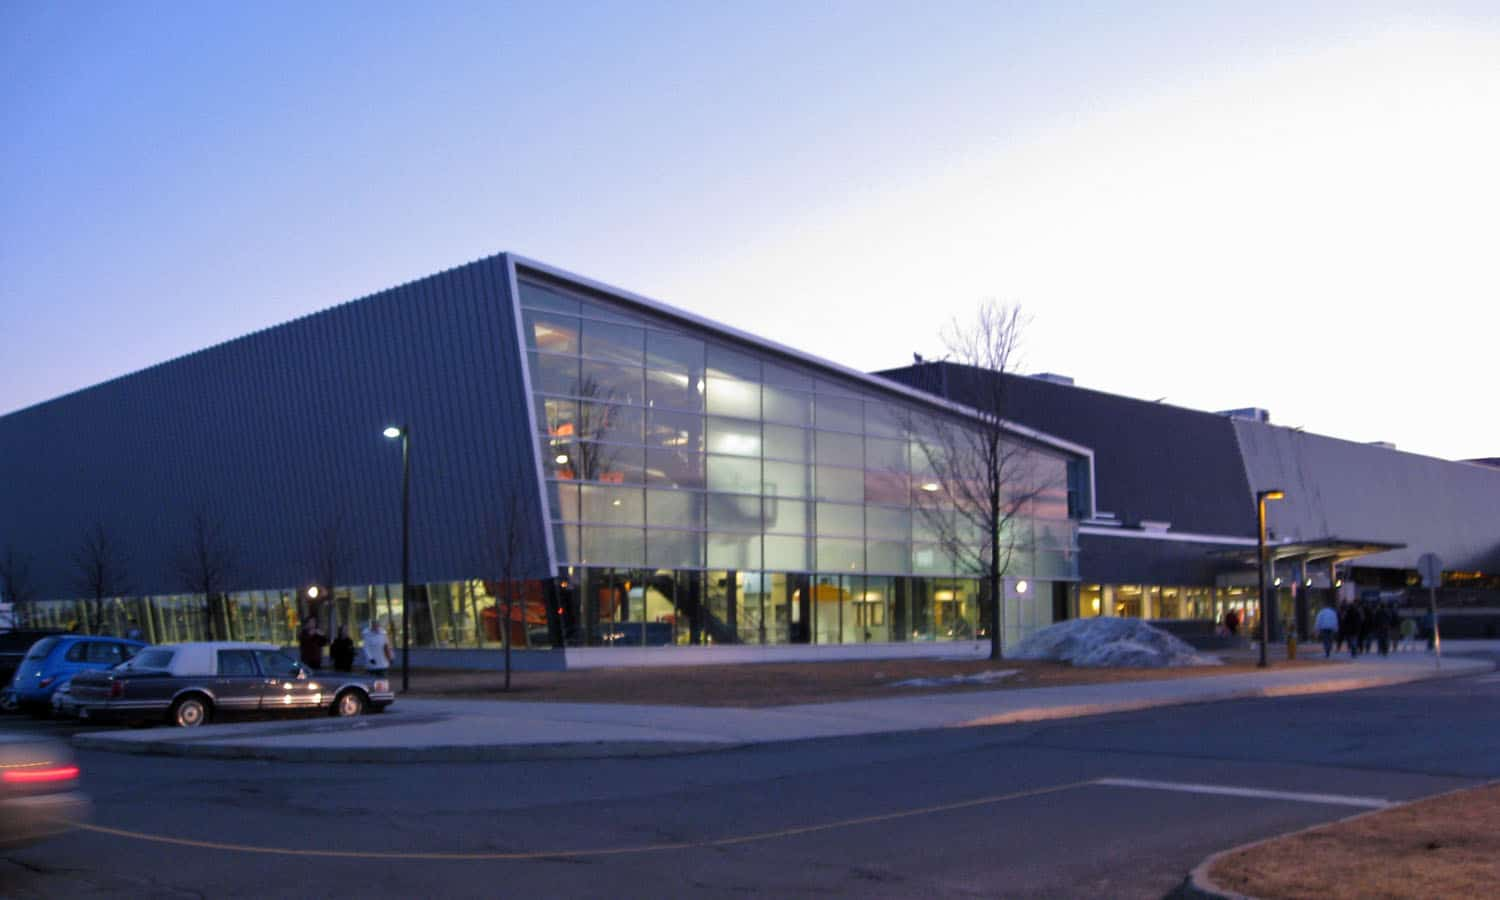 A new aquatic centre was added to the east end of the Civic Complex